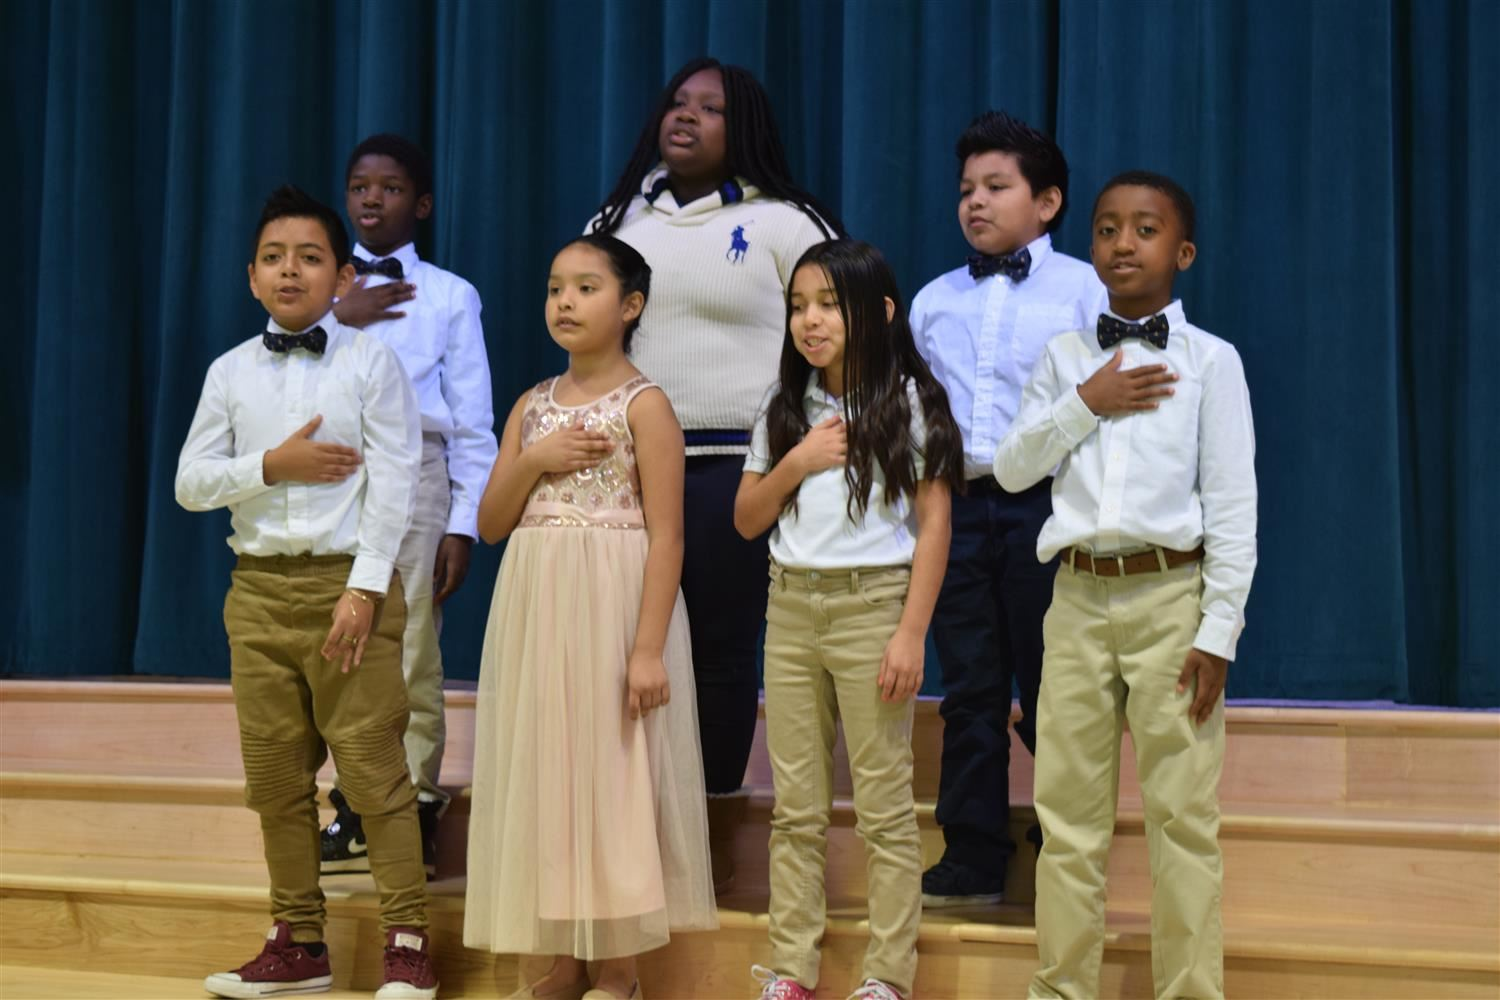 Dunston students lead guests in the pledge